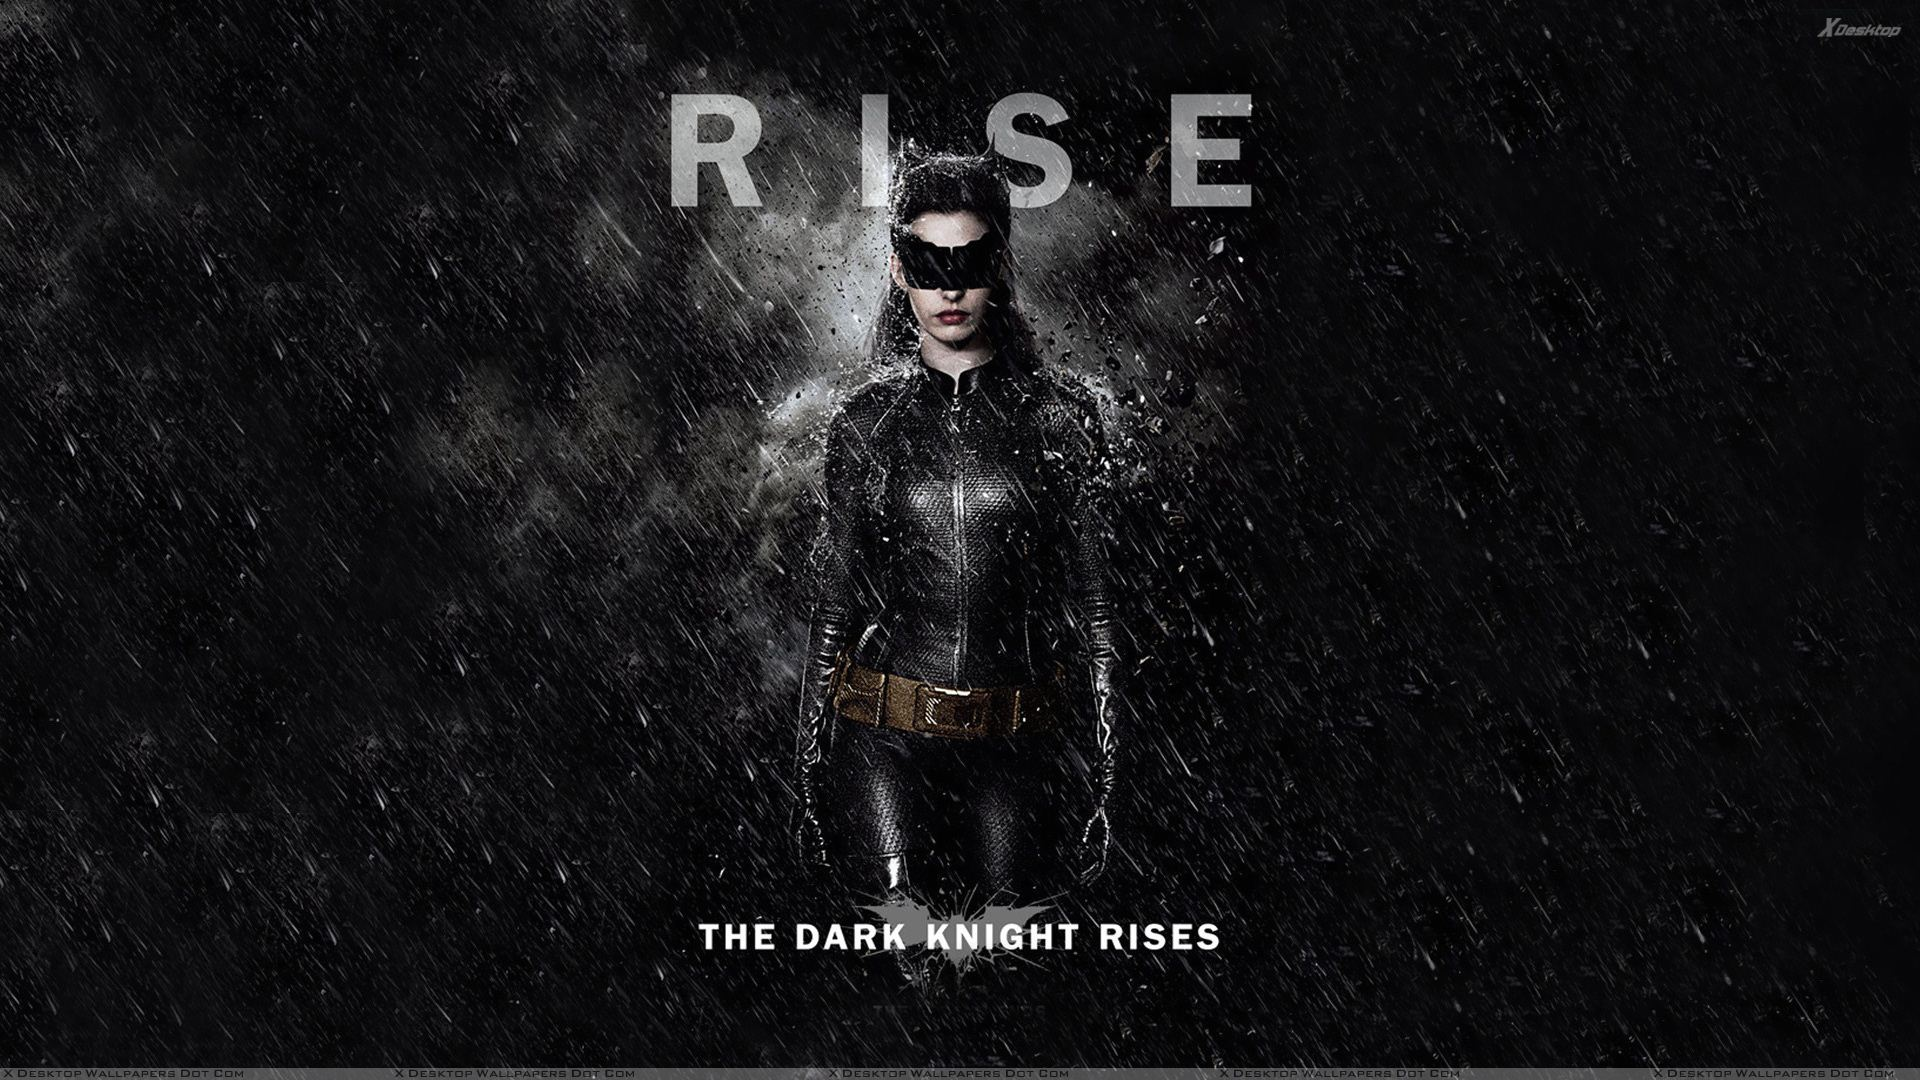 The Dark Knight Rises Wallpapers Photos Images In Hd